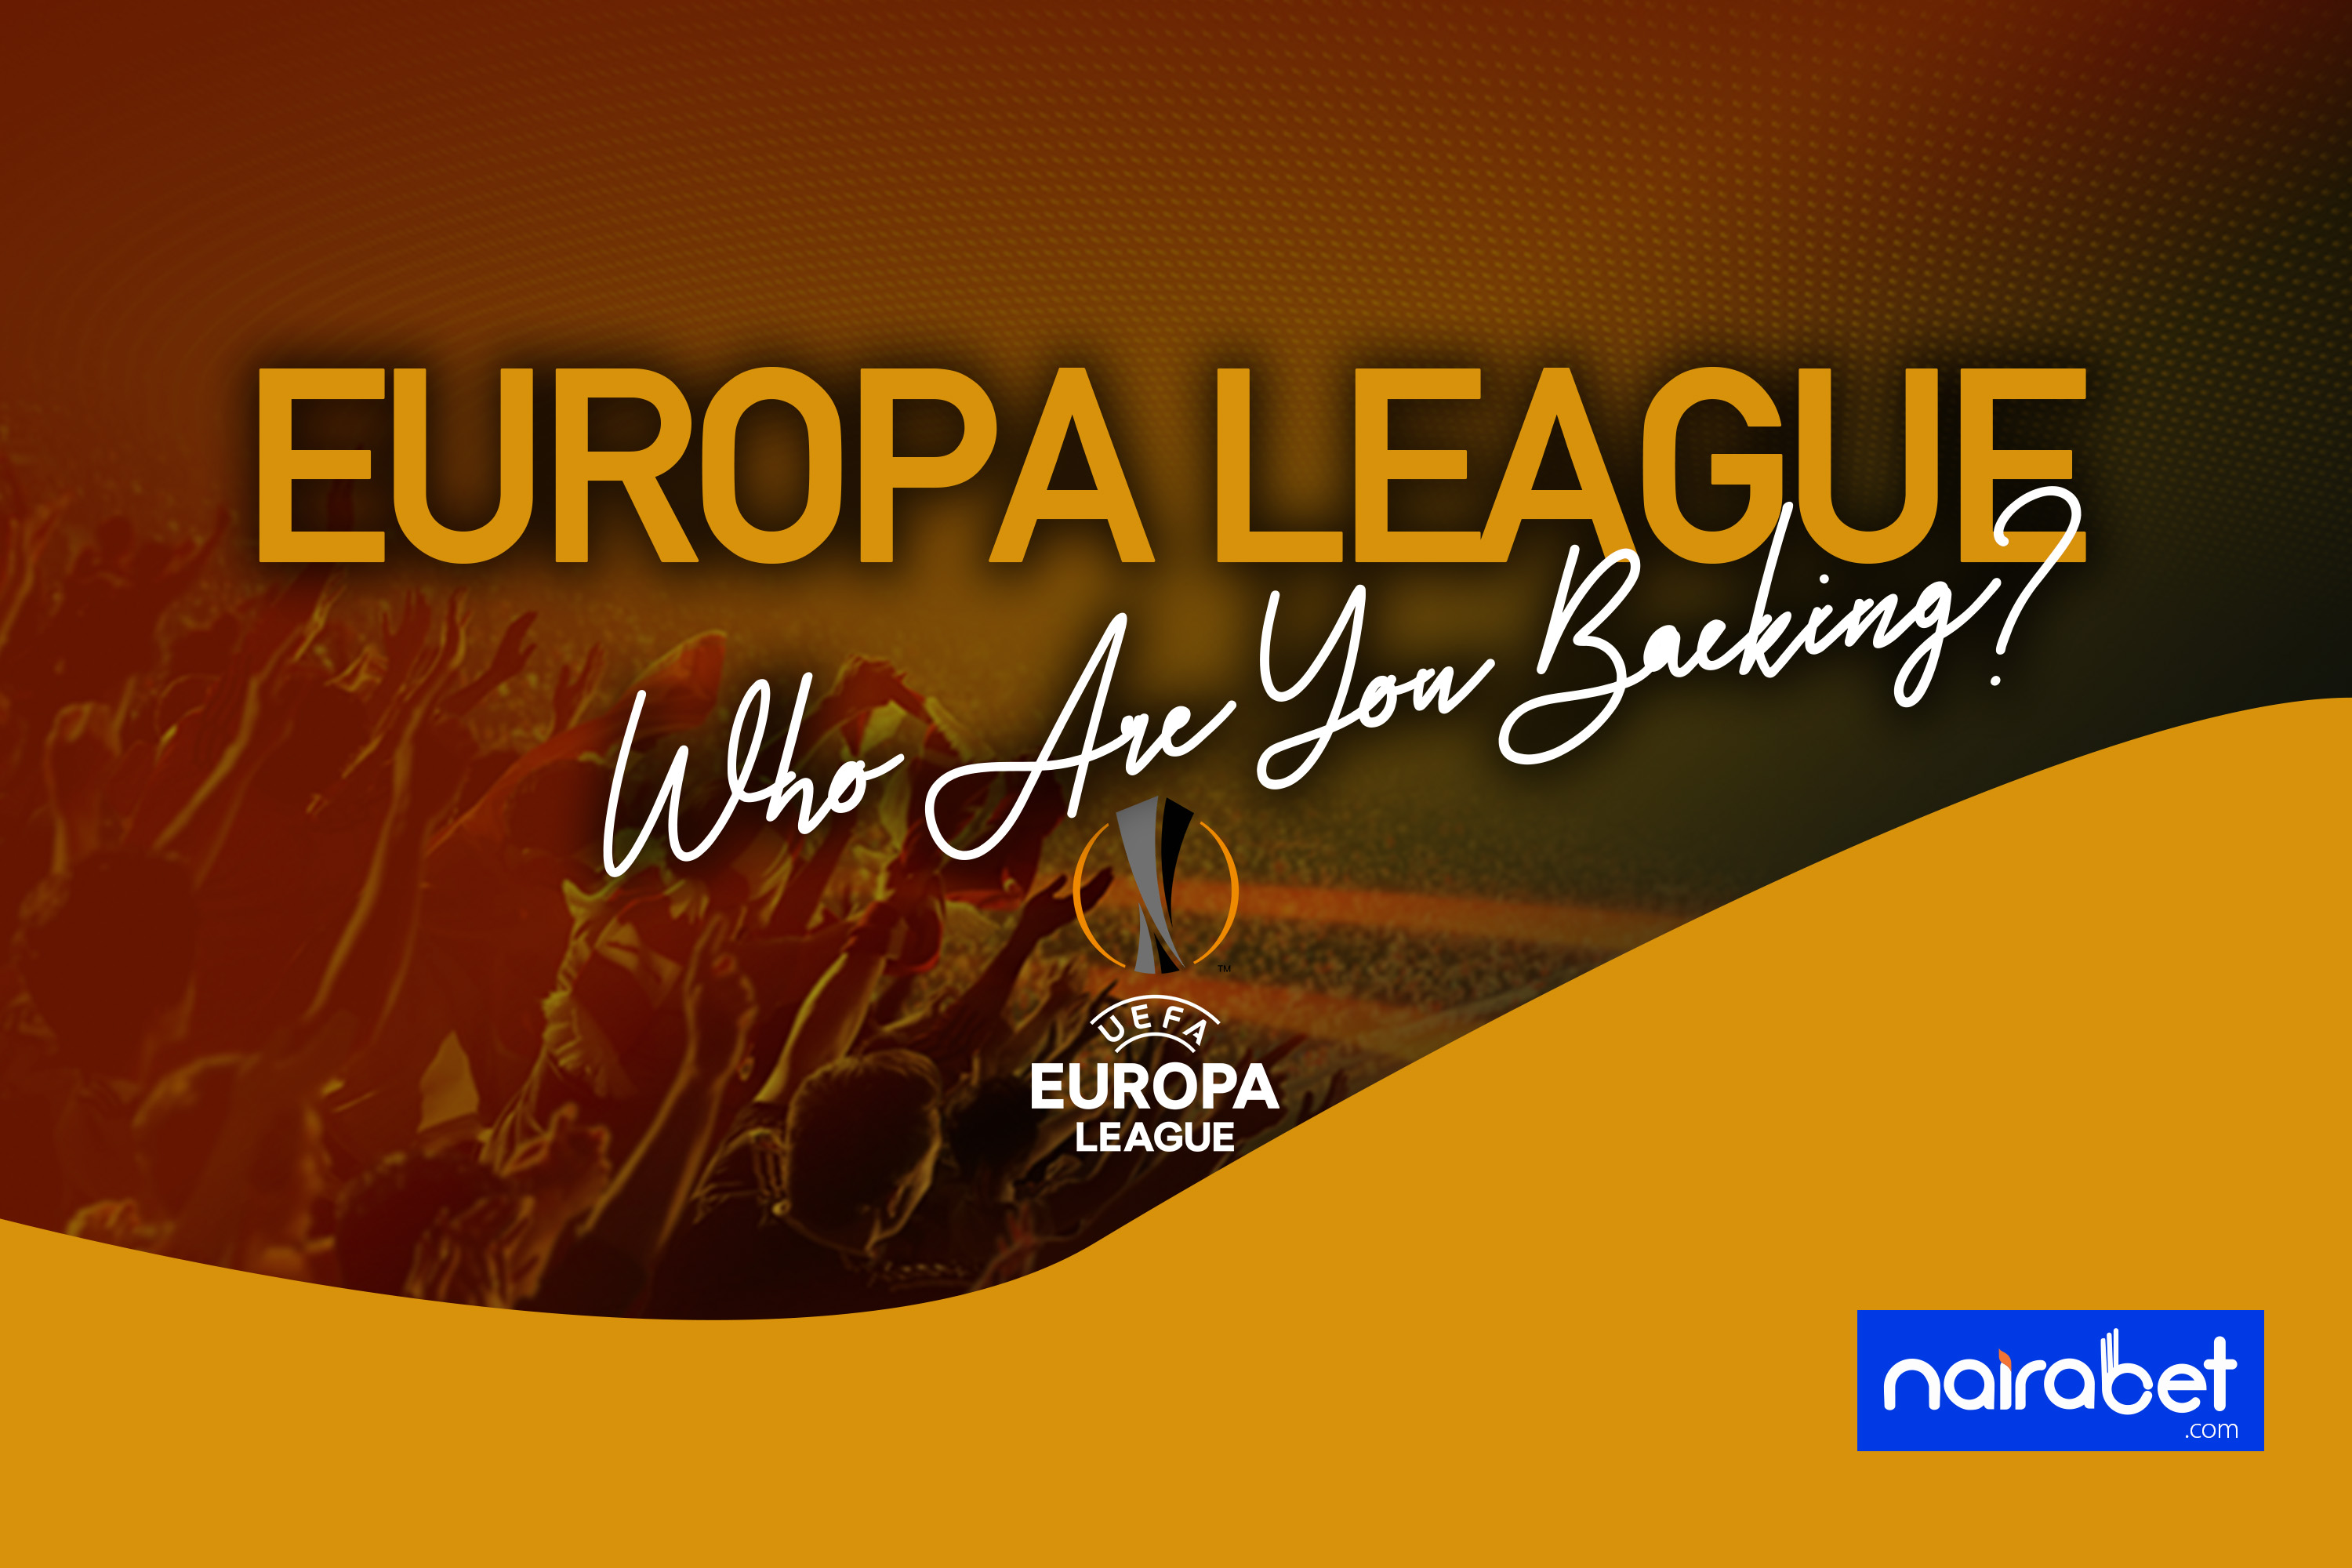 europa league backing